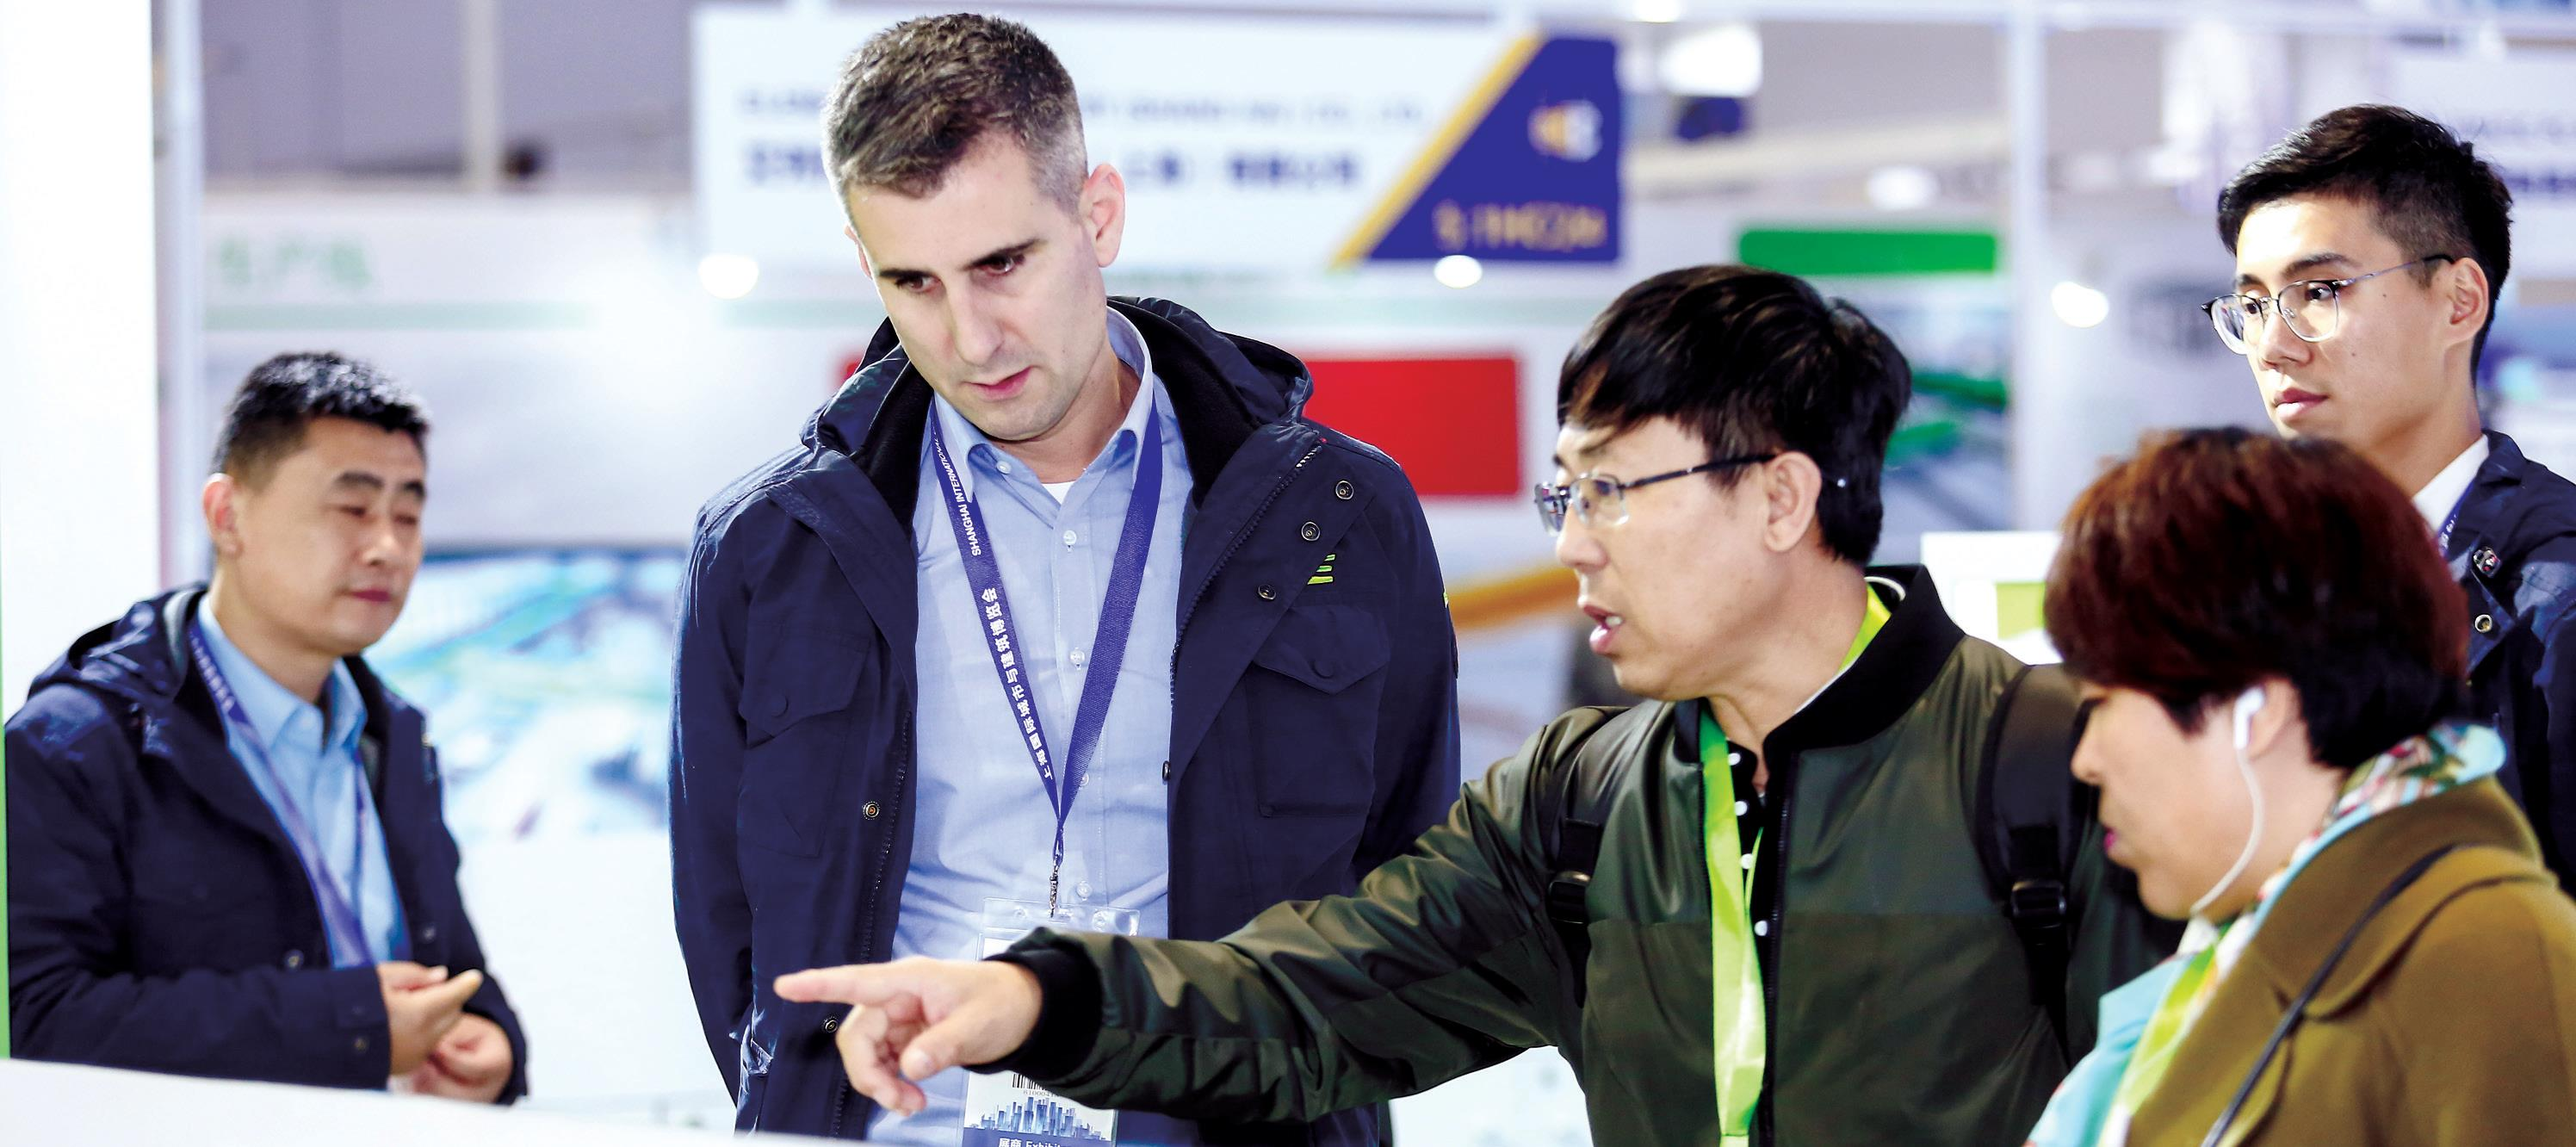 BIC 2019 Showcases Latest in Construction Technology and Trends